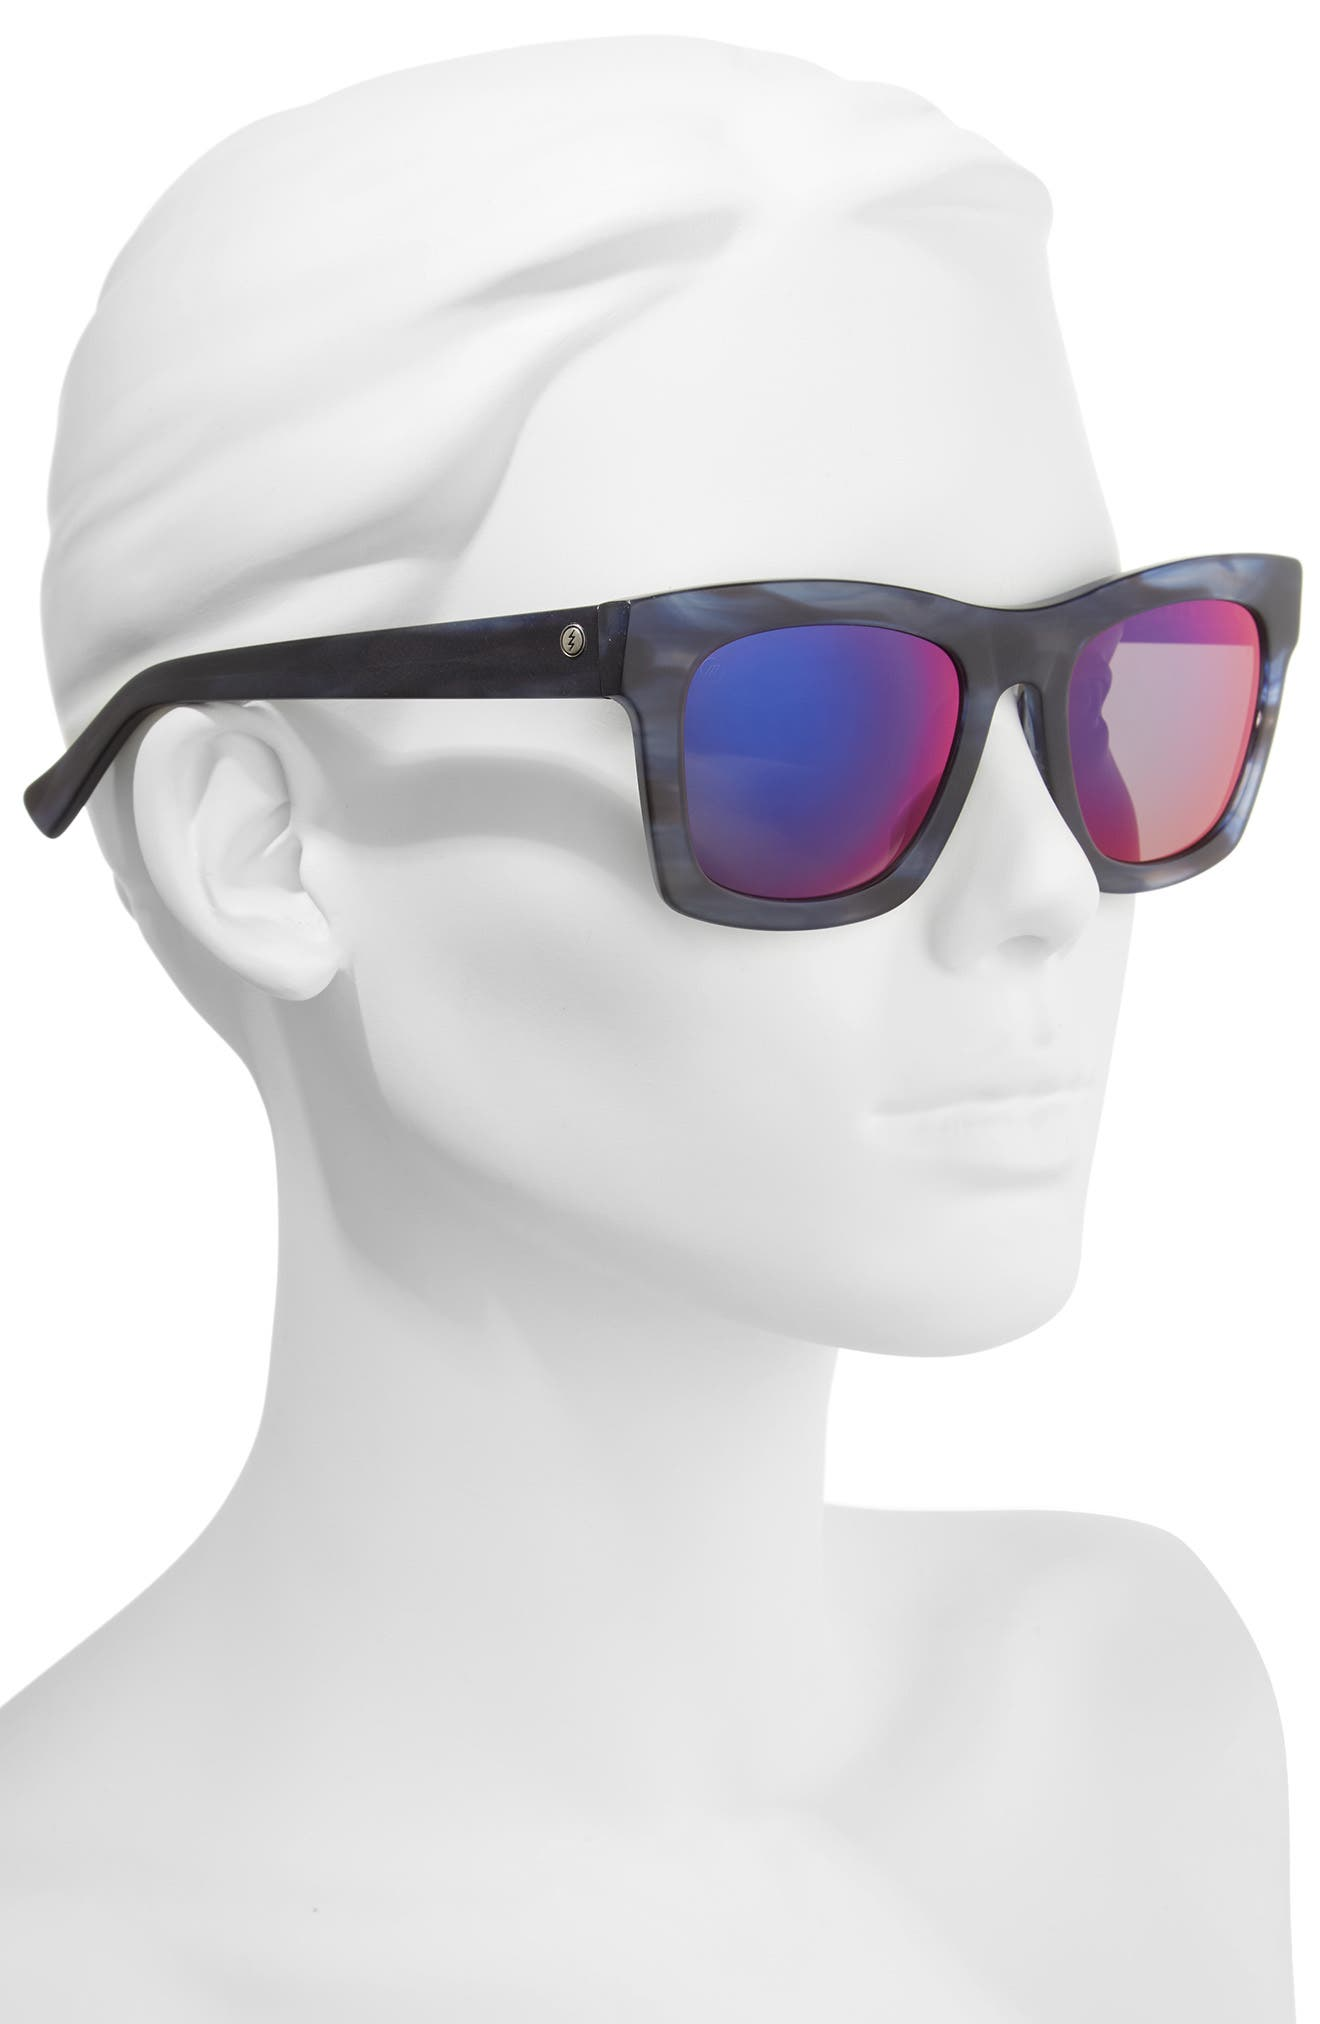 Crasher 53mm Mirrored Sunglasses,                             Alternate thumbnail 2, color,                             001